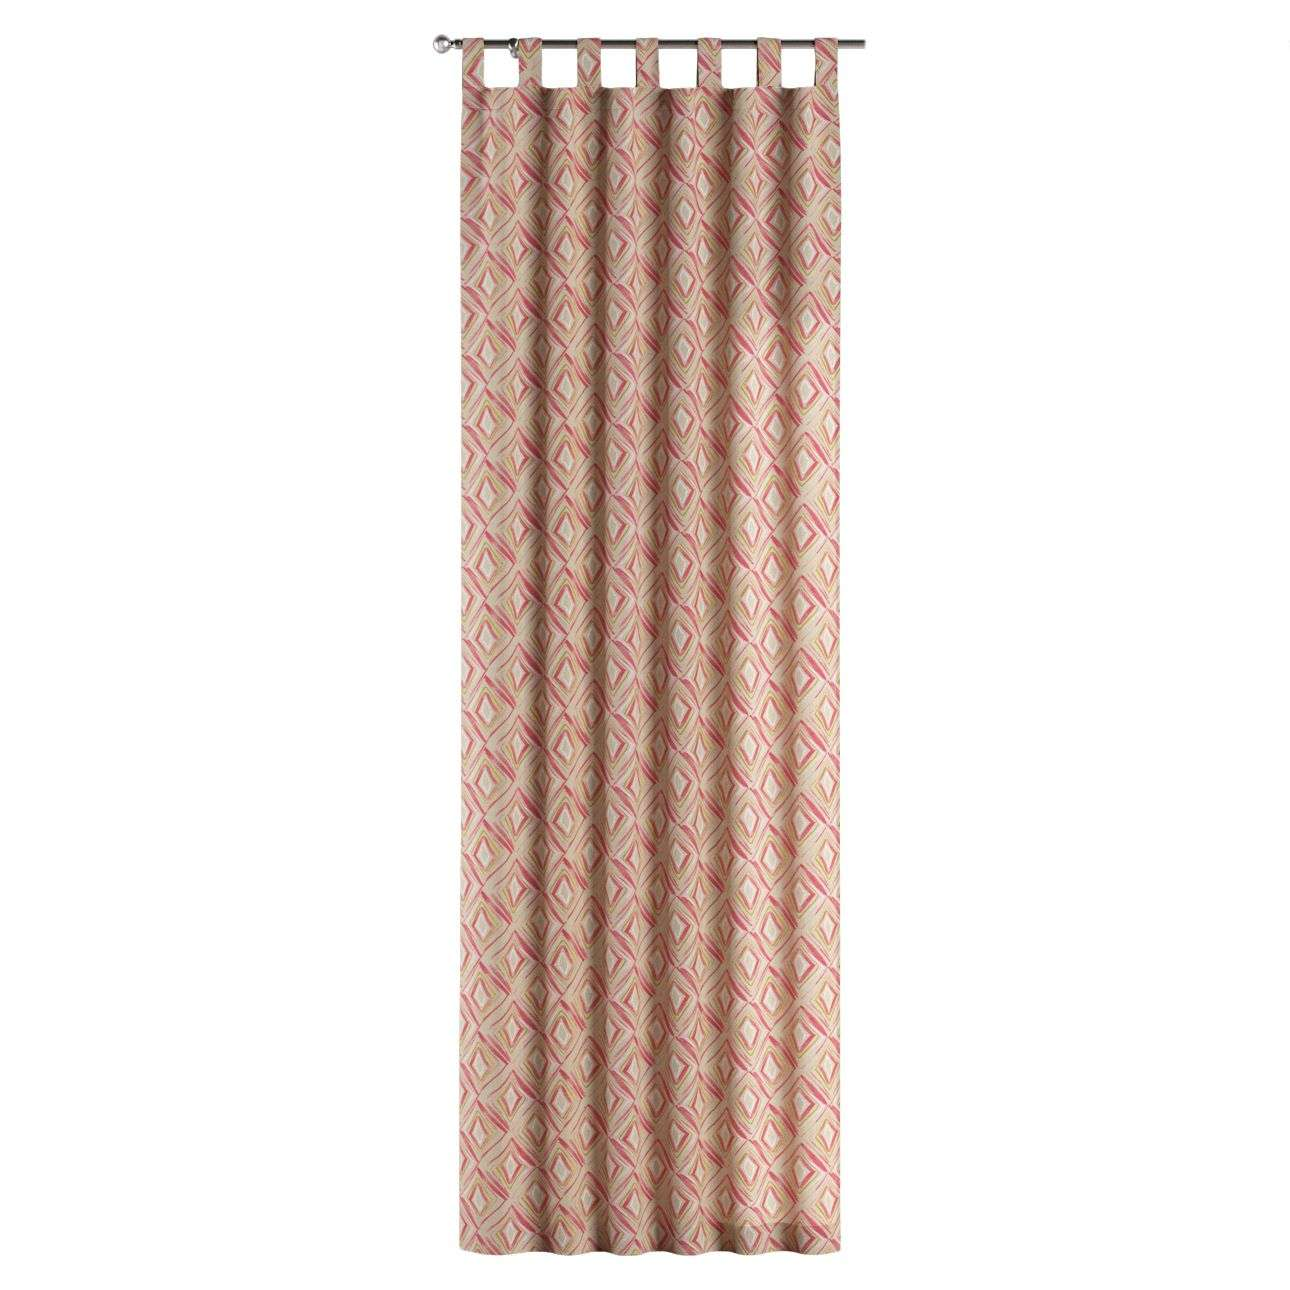 Tab top curtains 130 × 260 cm (51 × 102 inch) in collection Londres, fabric: 140-45